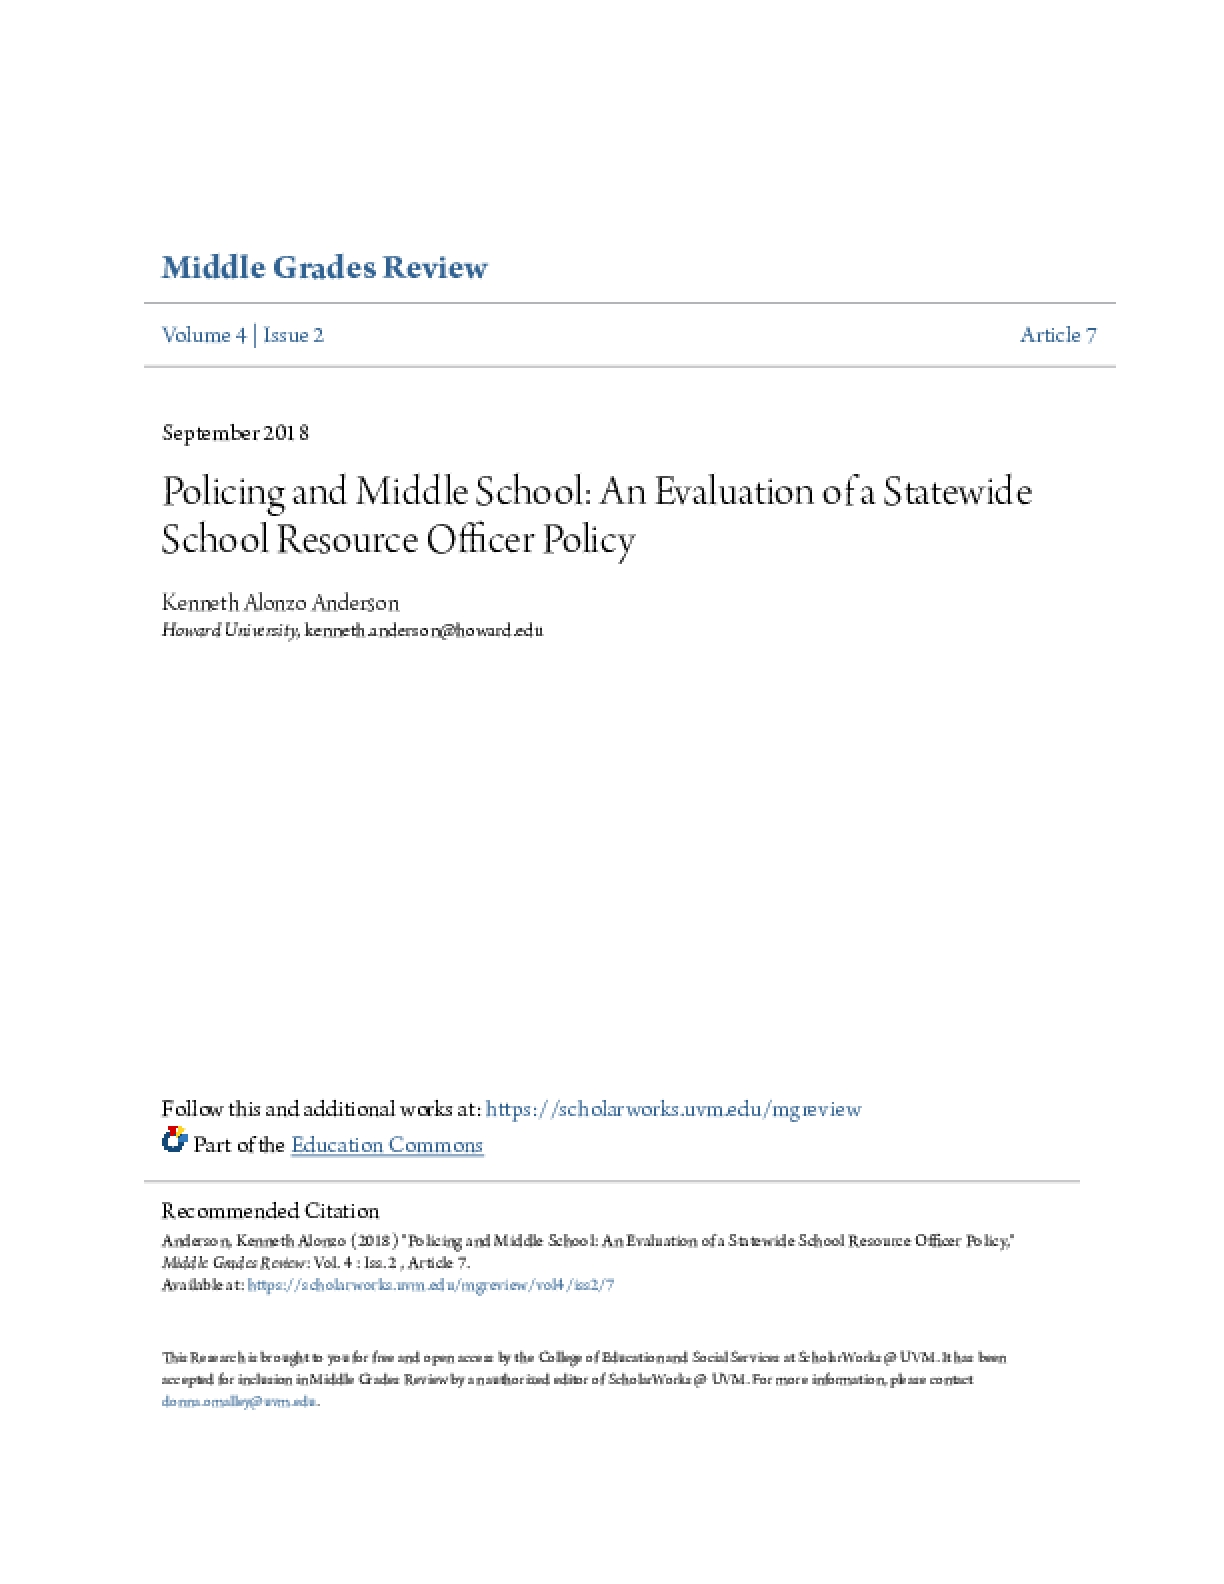 Policing and Middle School: An Evaluation of a Statewide School Resource Officer Policy